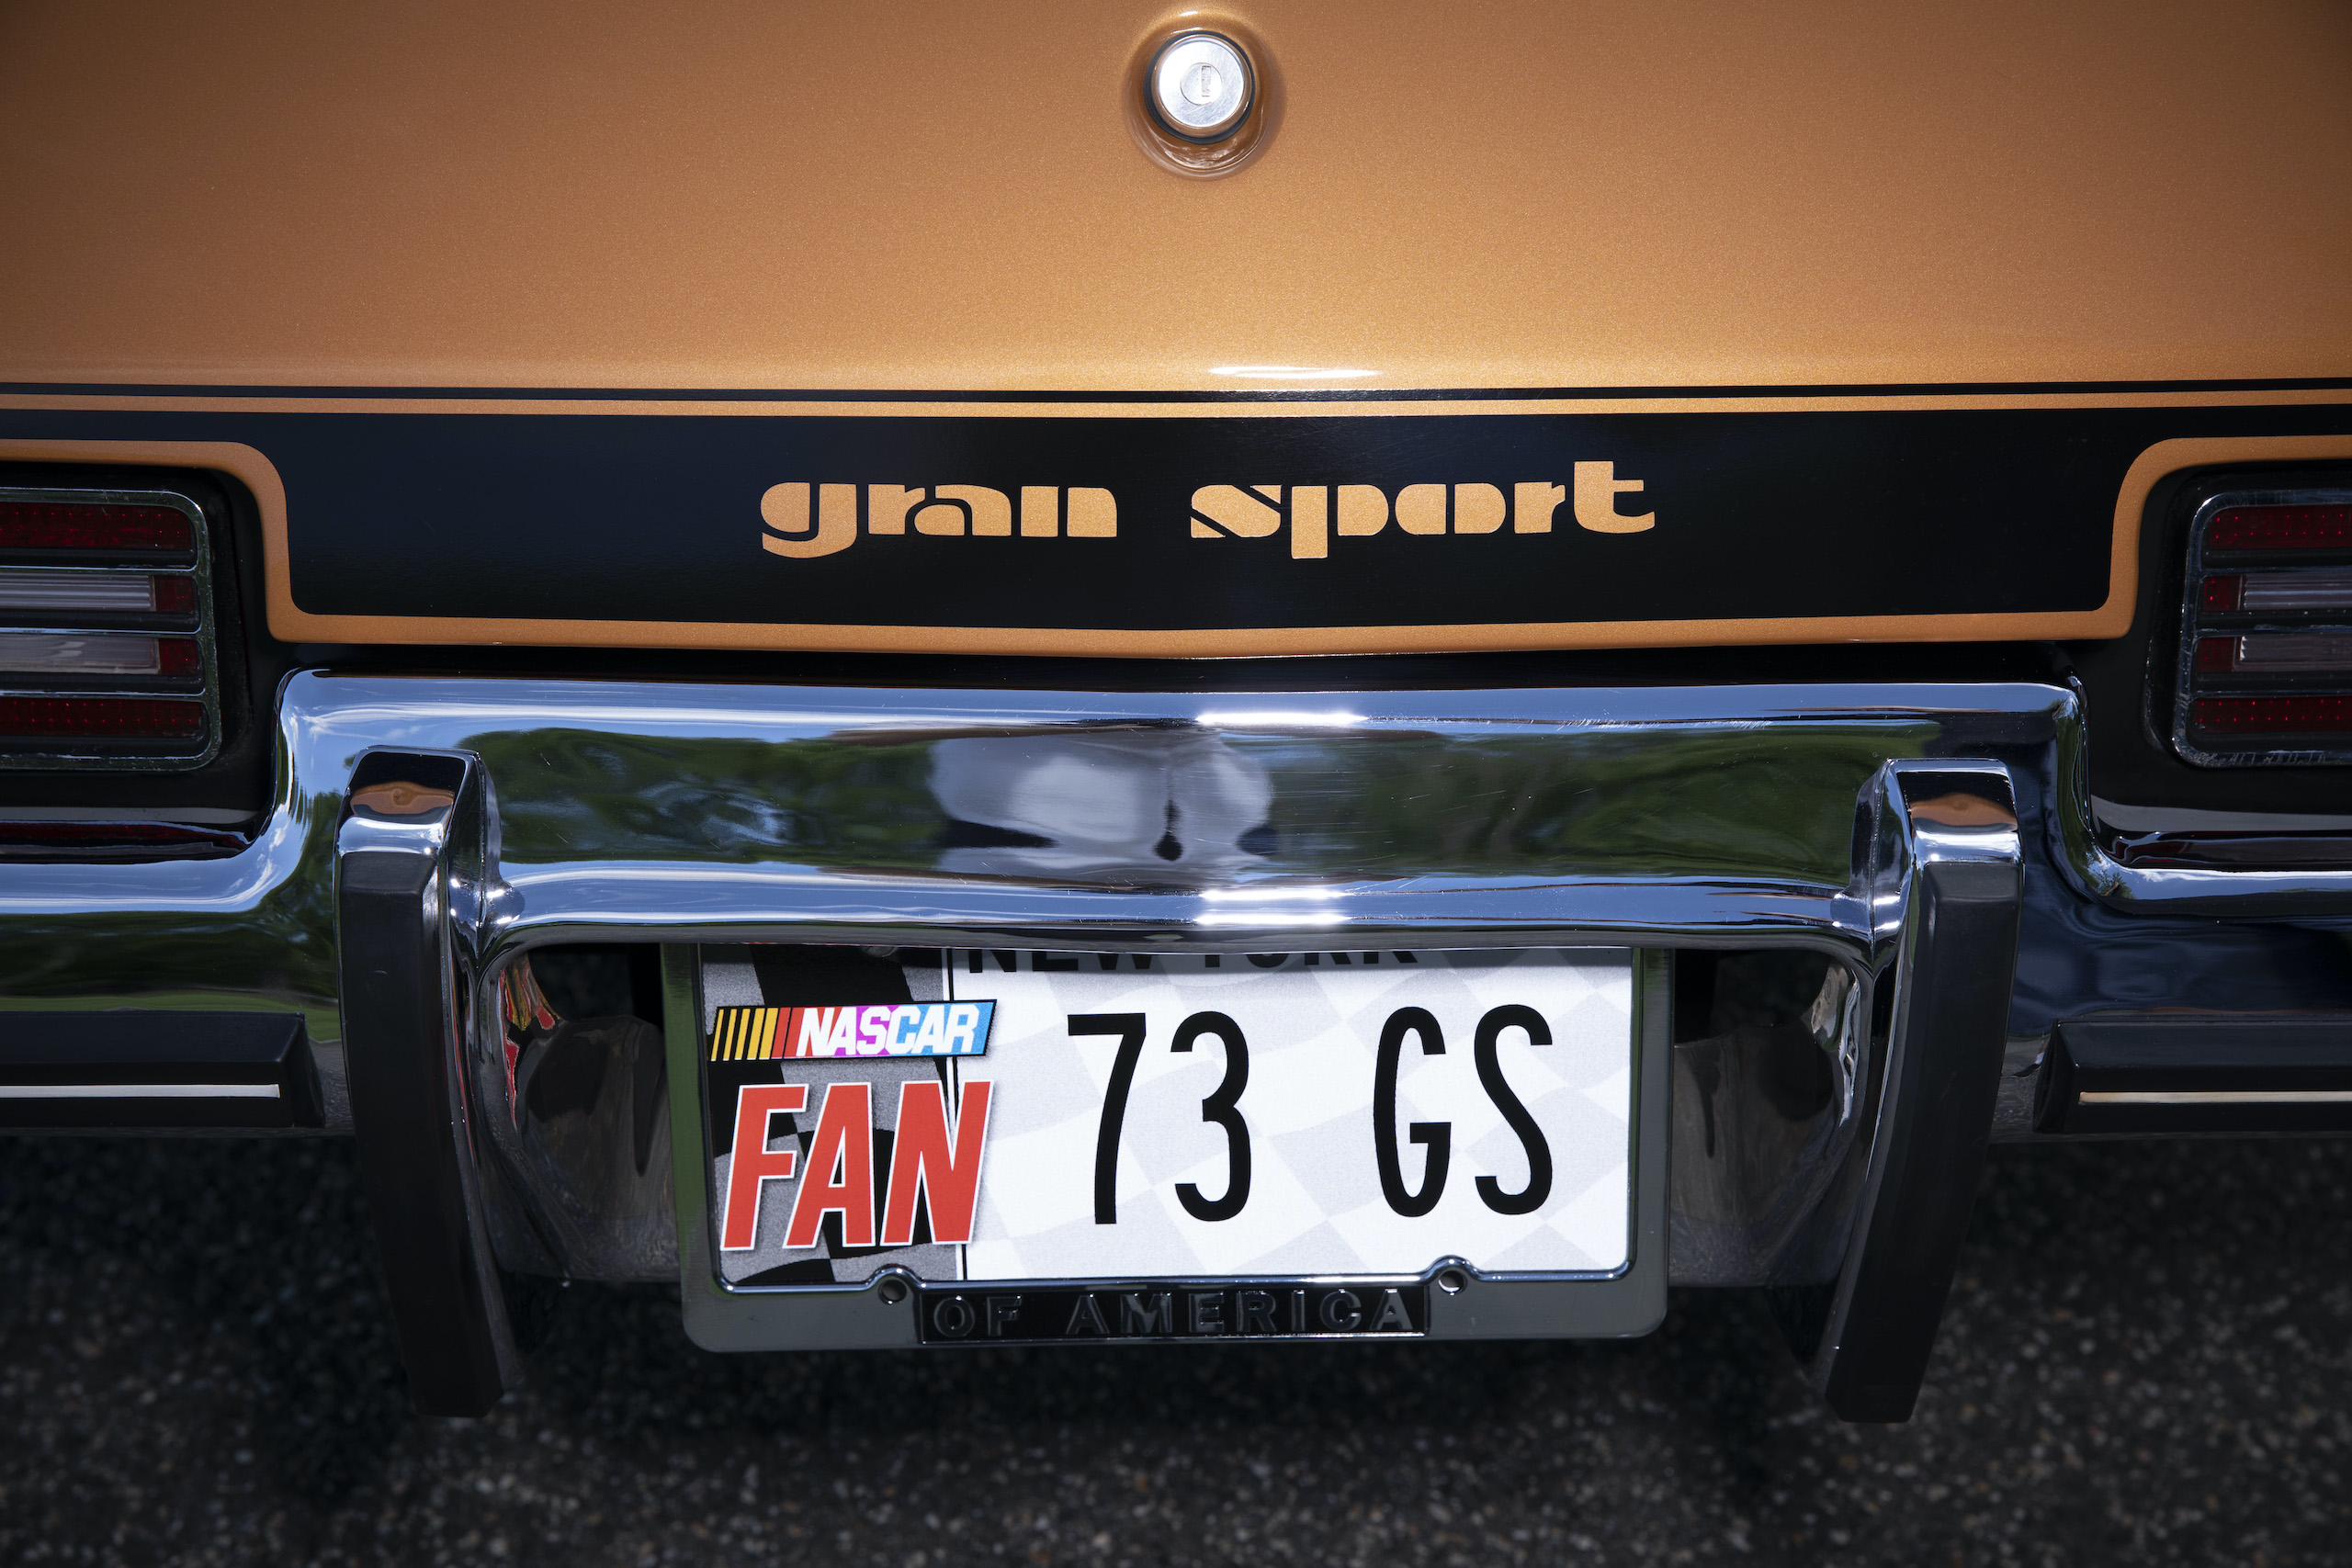 1973 Buick GS Stage 1 gran sport coupe decal